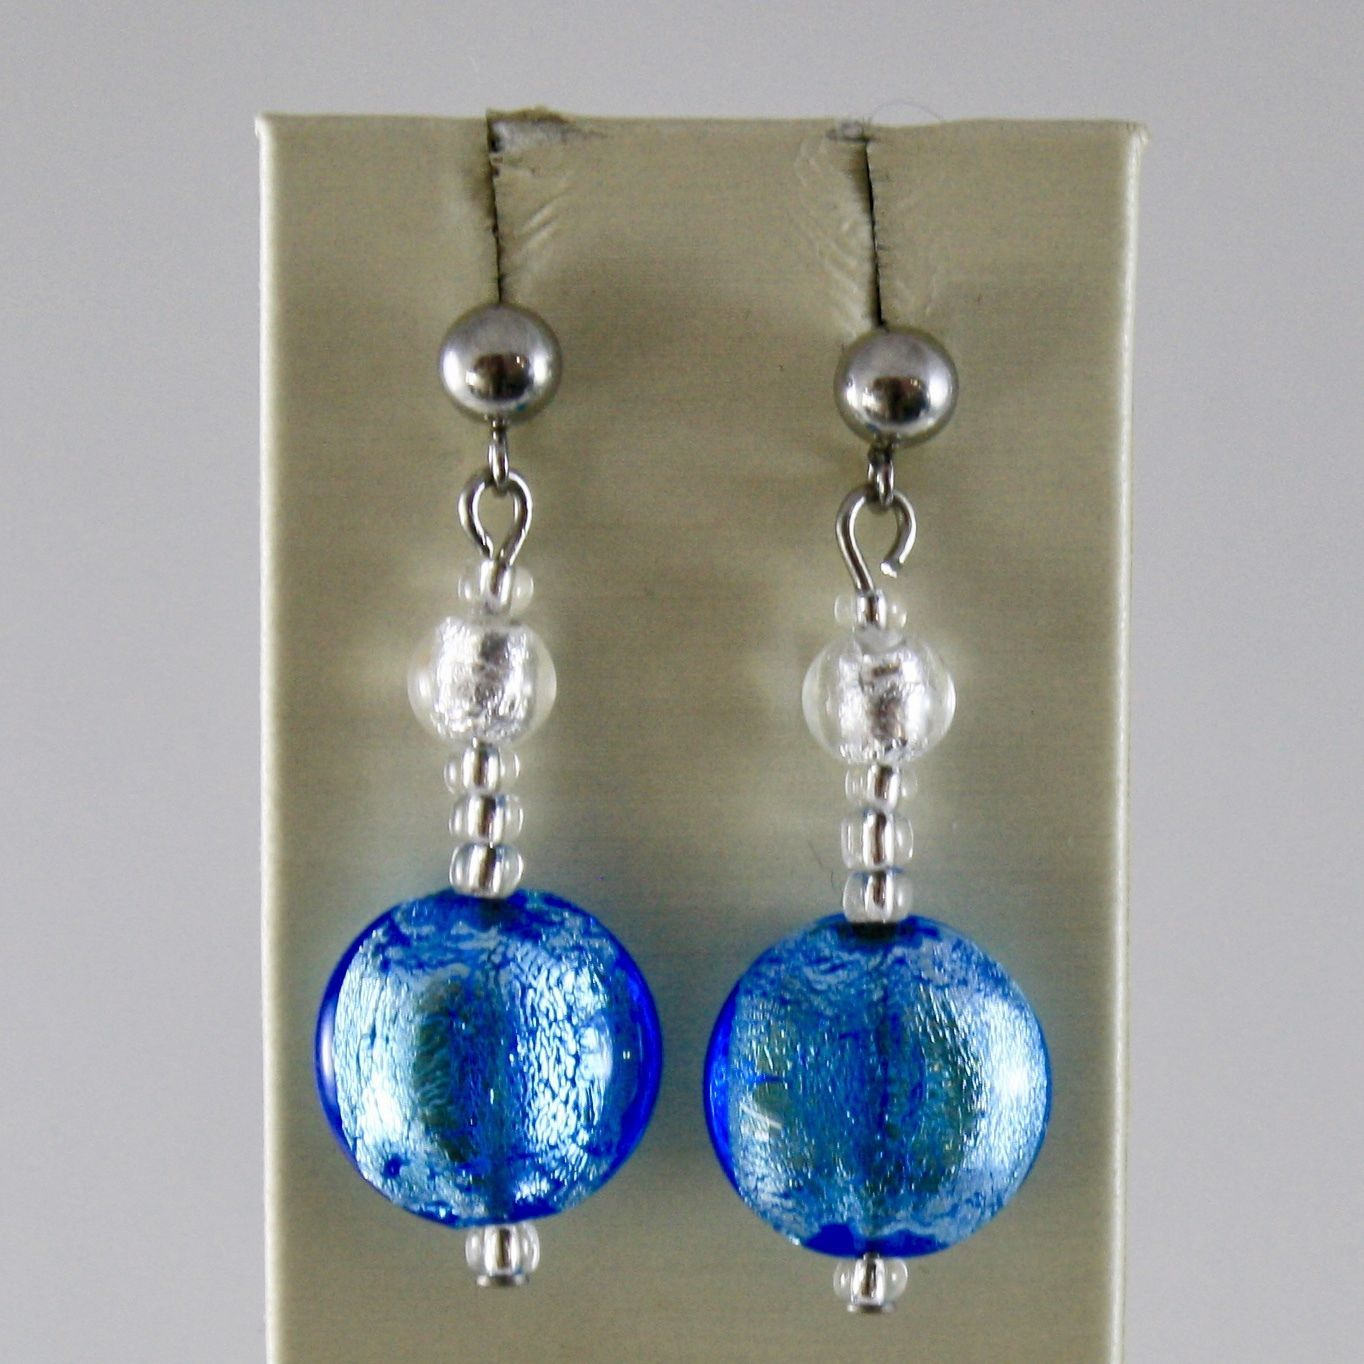 ANTICA MURRINA VENEZIA 15 MM DISCS PENDANT 4 CM FRIDA EARRINGS DISC BLUE & WHITE